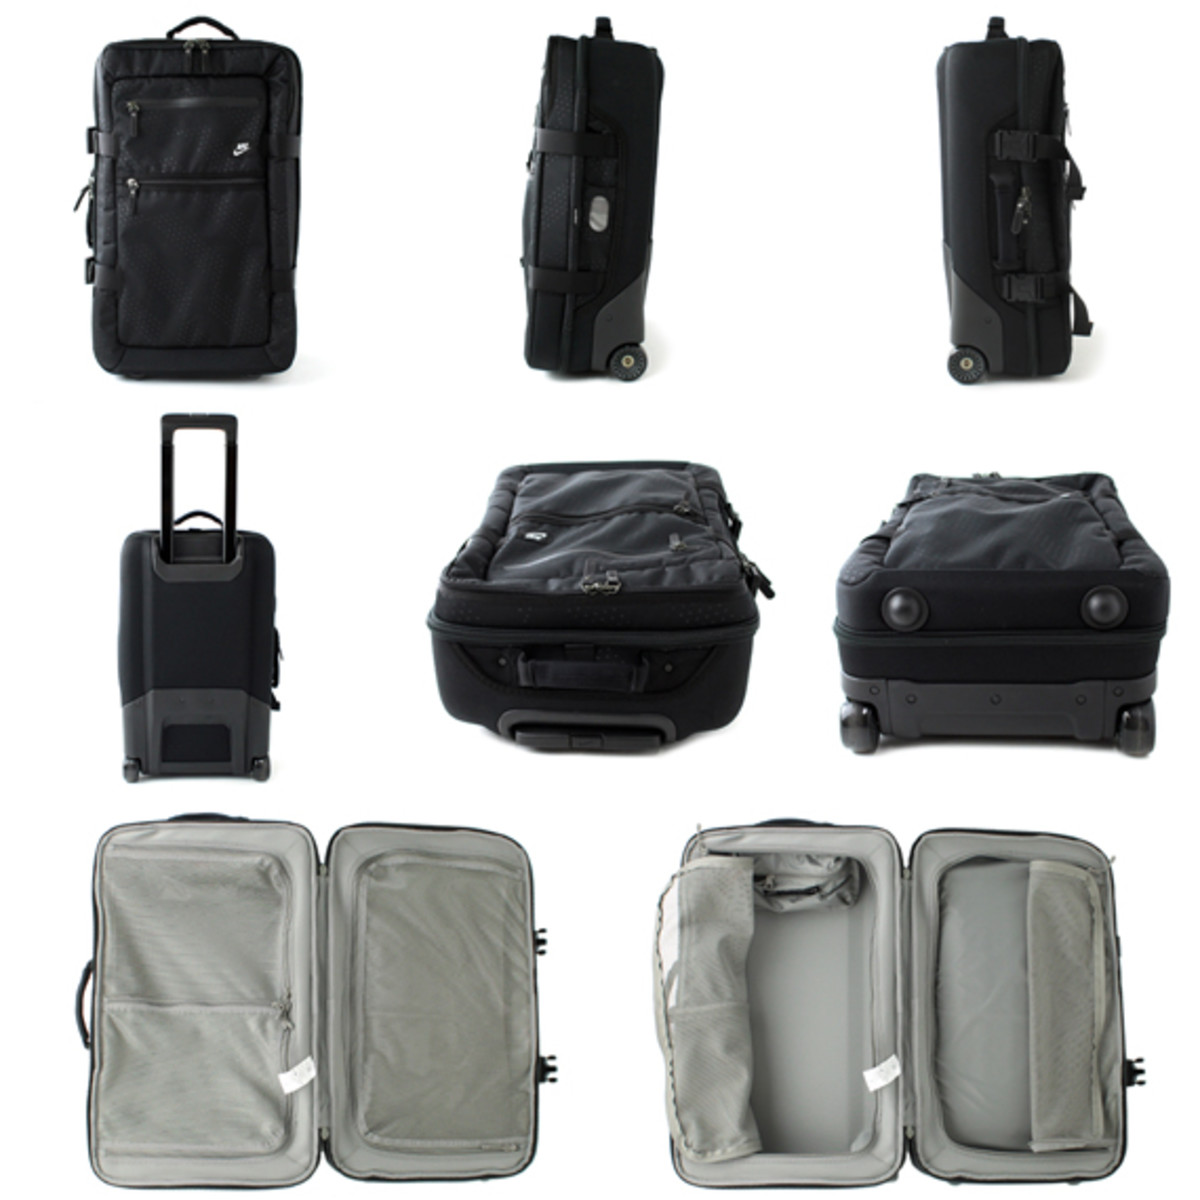 nike-fiftyone49-luggage-collection-02